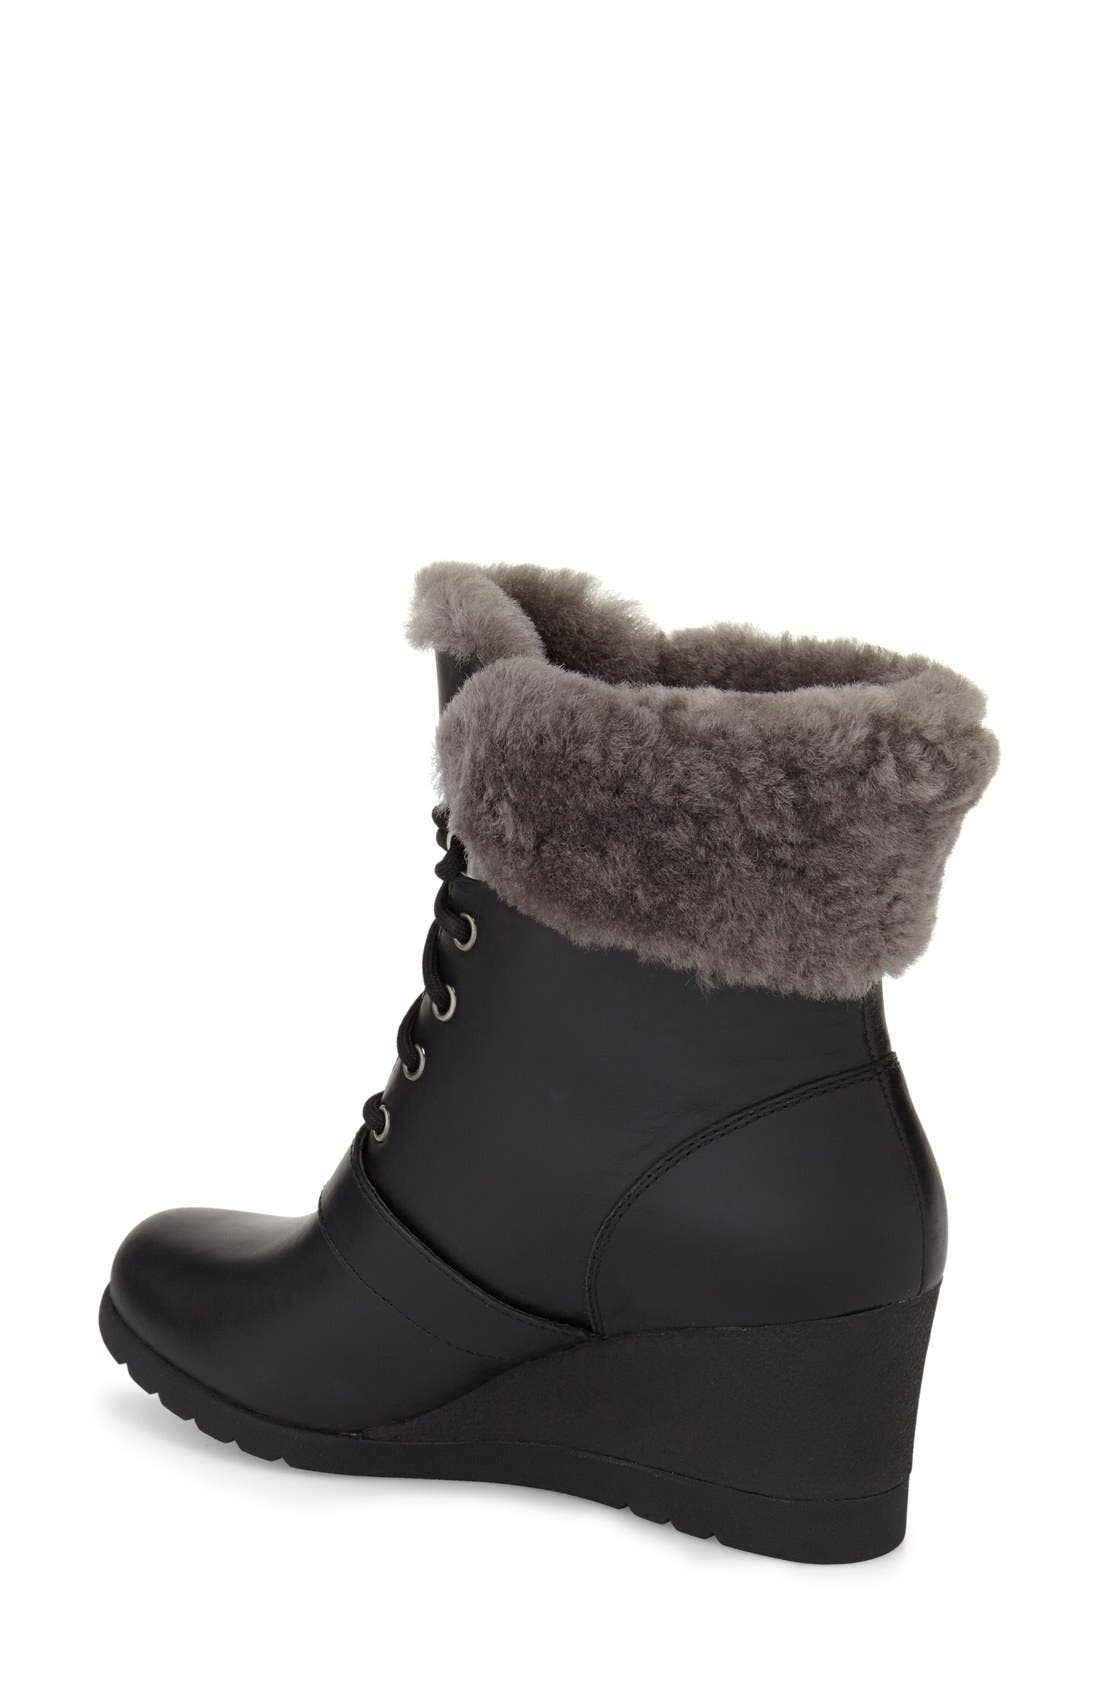 Janney Waterproof Thinsulate<sup>®</sup> Wedge Bootie,                             Alternate thumbnail 2, color,                             001